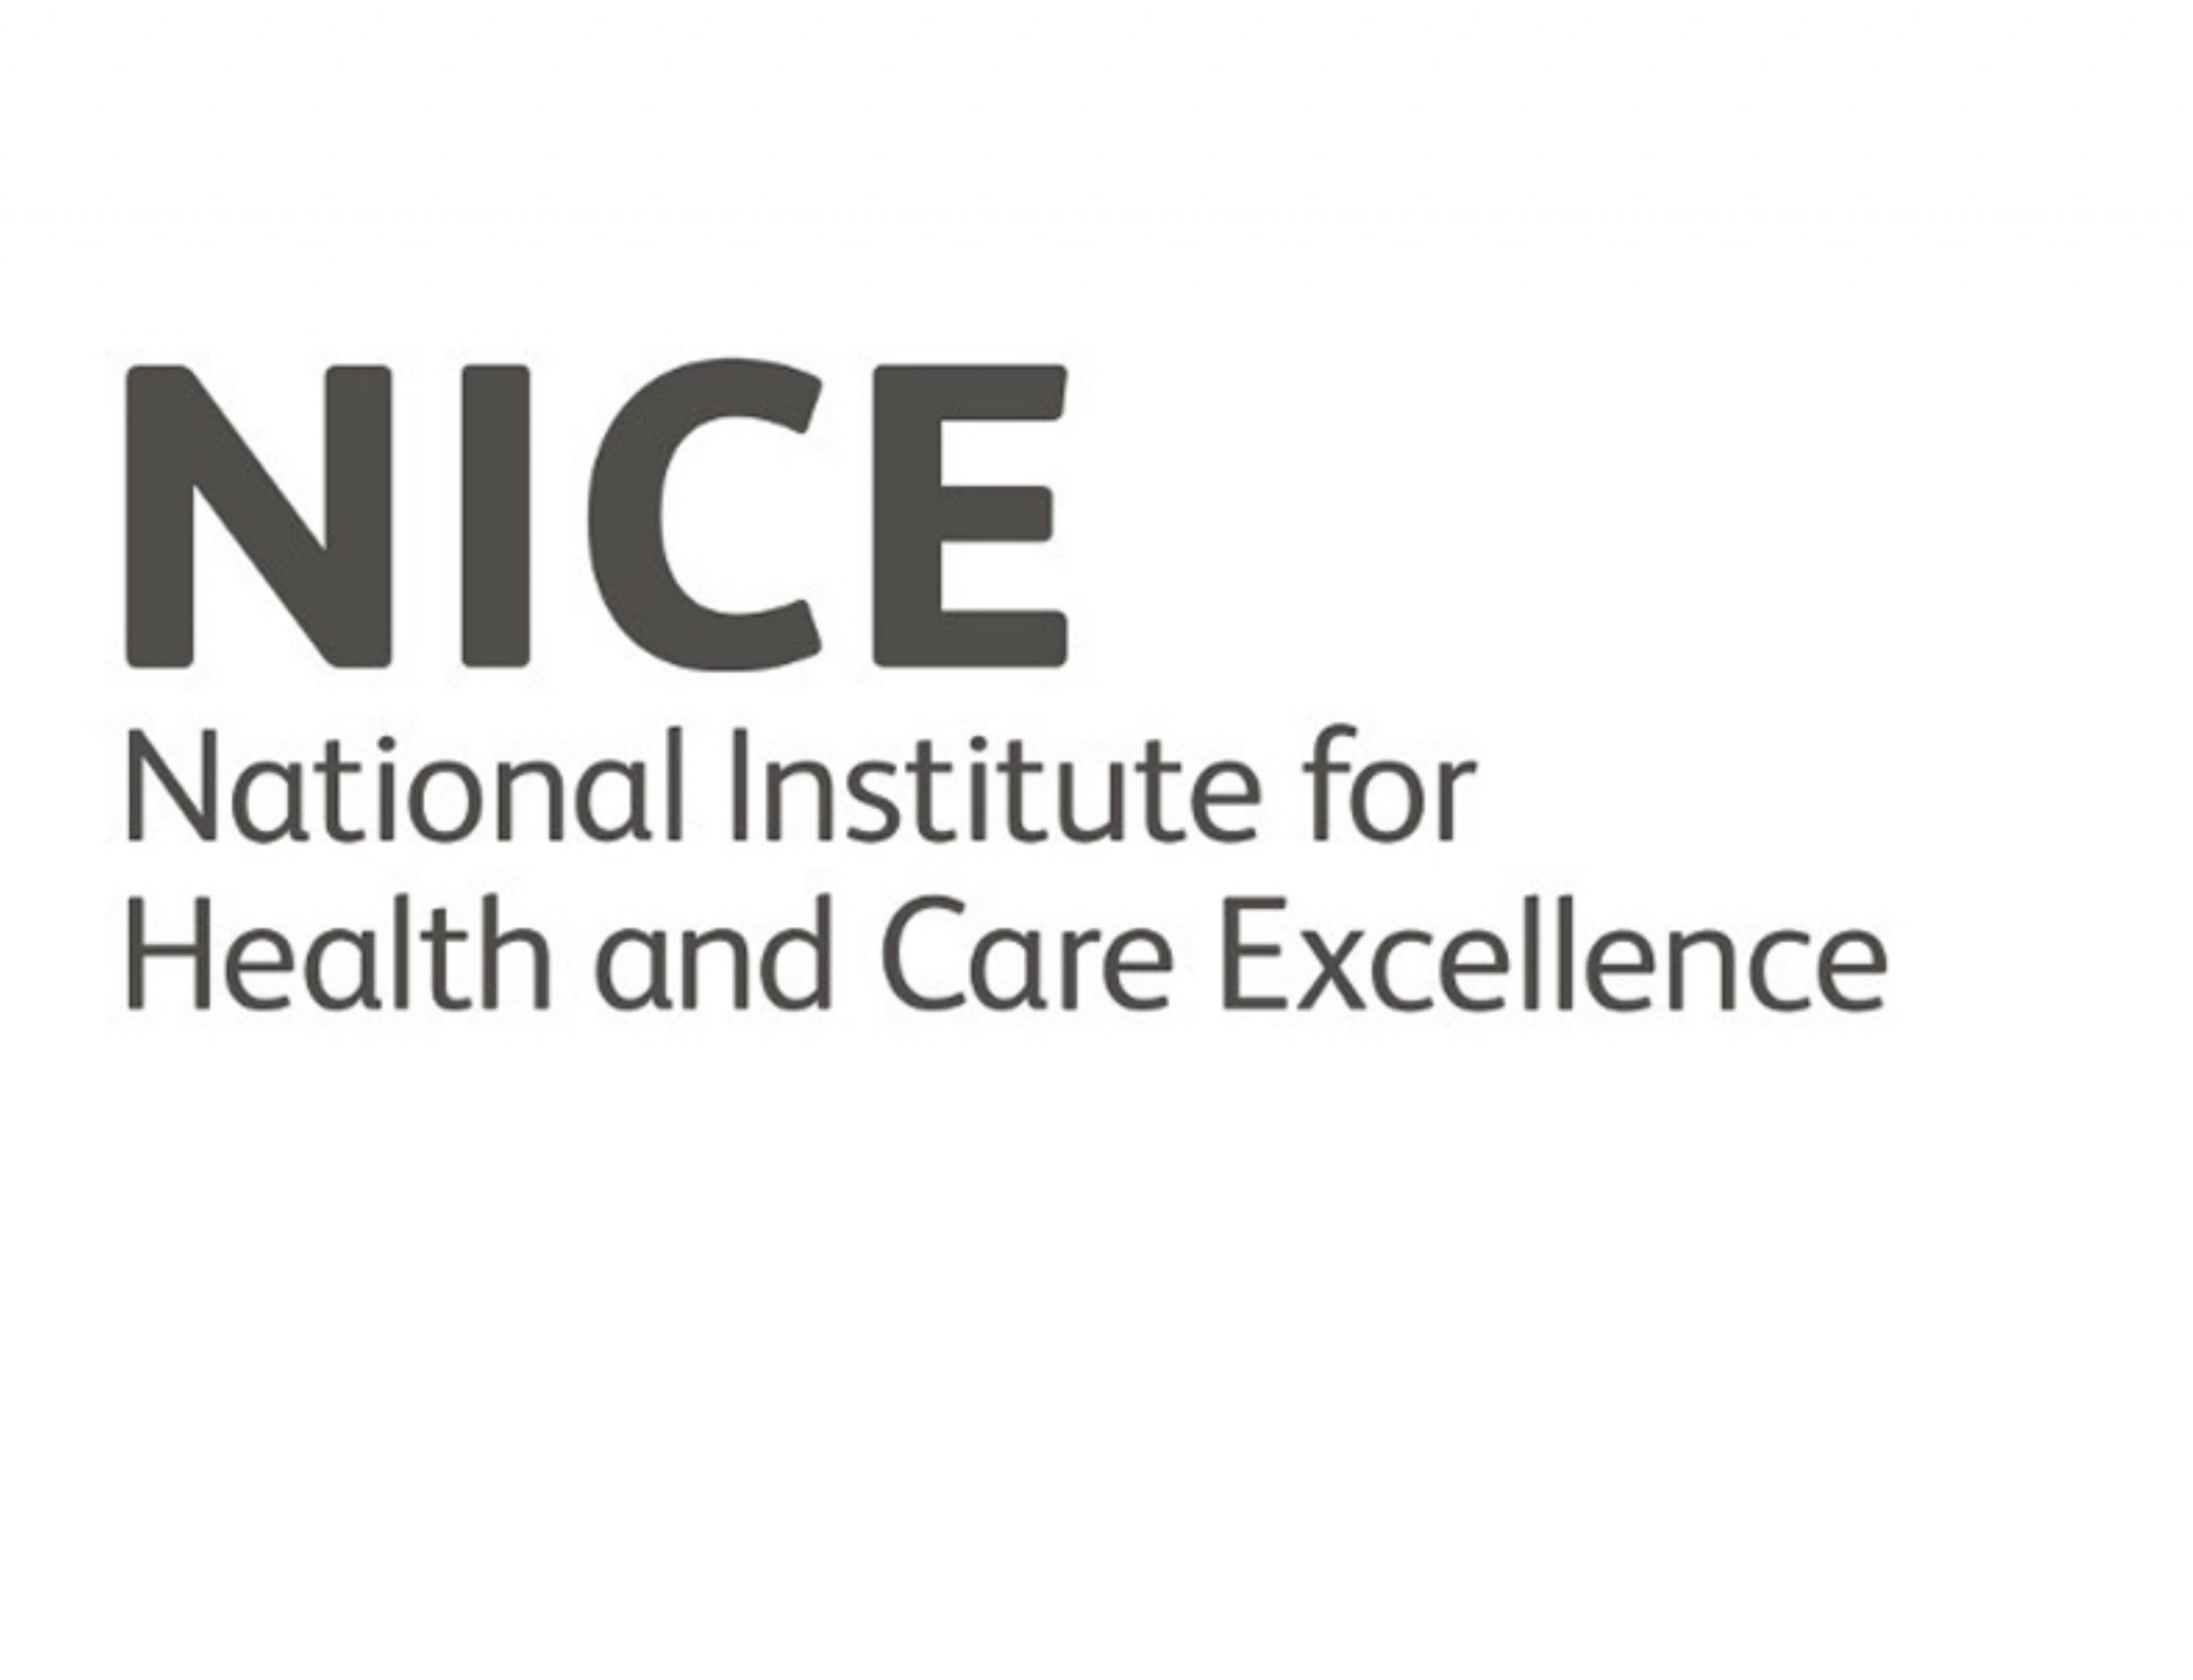 NICE Launches Online Resource to Help Development and Adoption of New Health Technologies